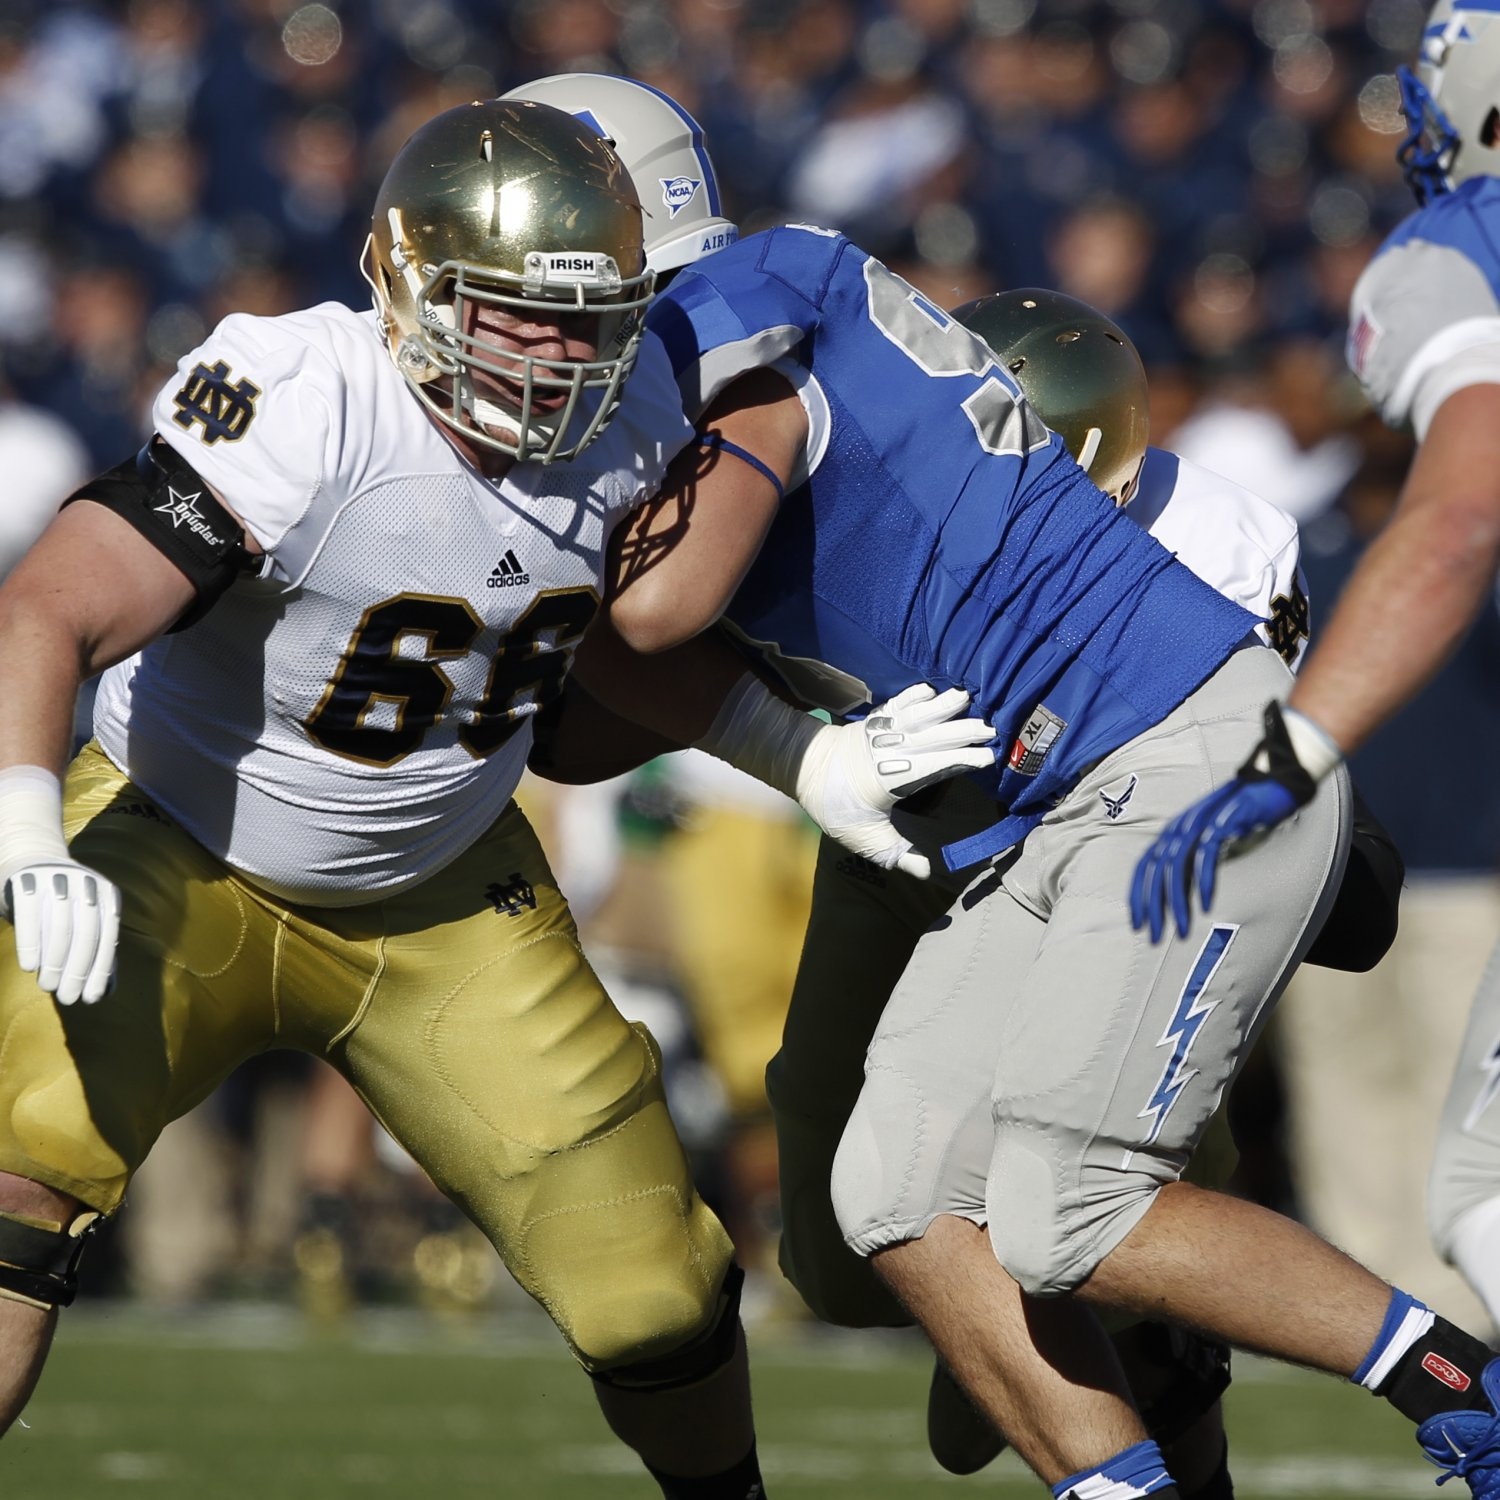 San Diego Chargers Draft: Chris Watt NFL Draft 2014: Highlights, Scouting Report For